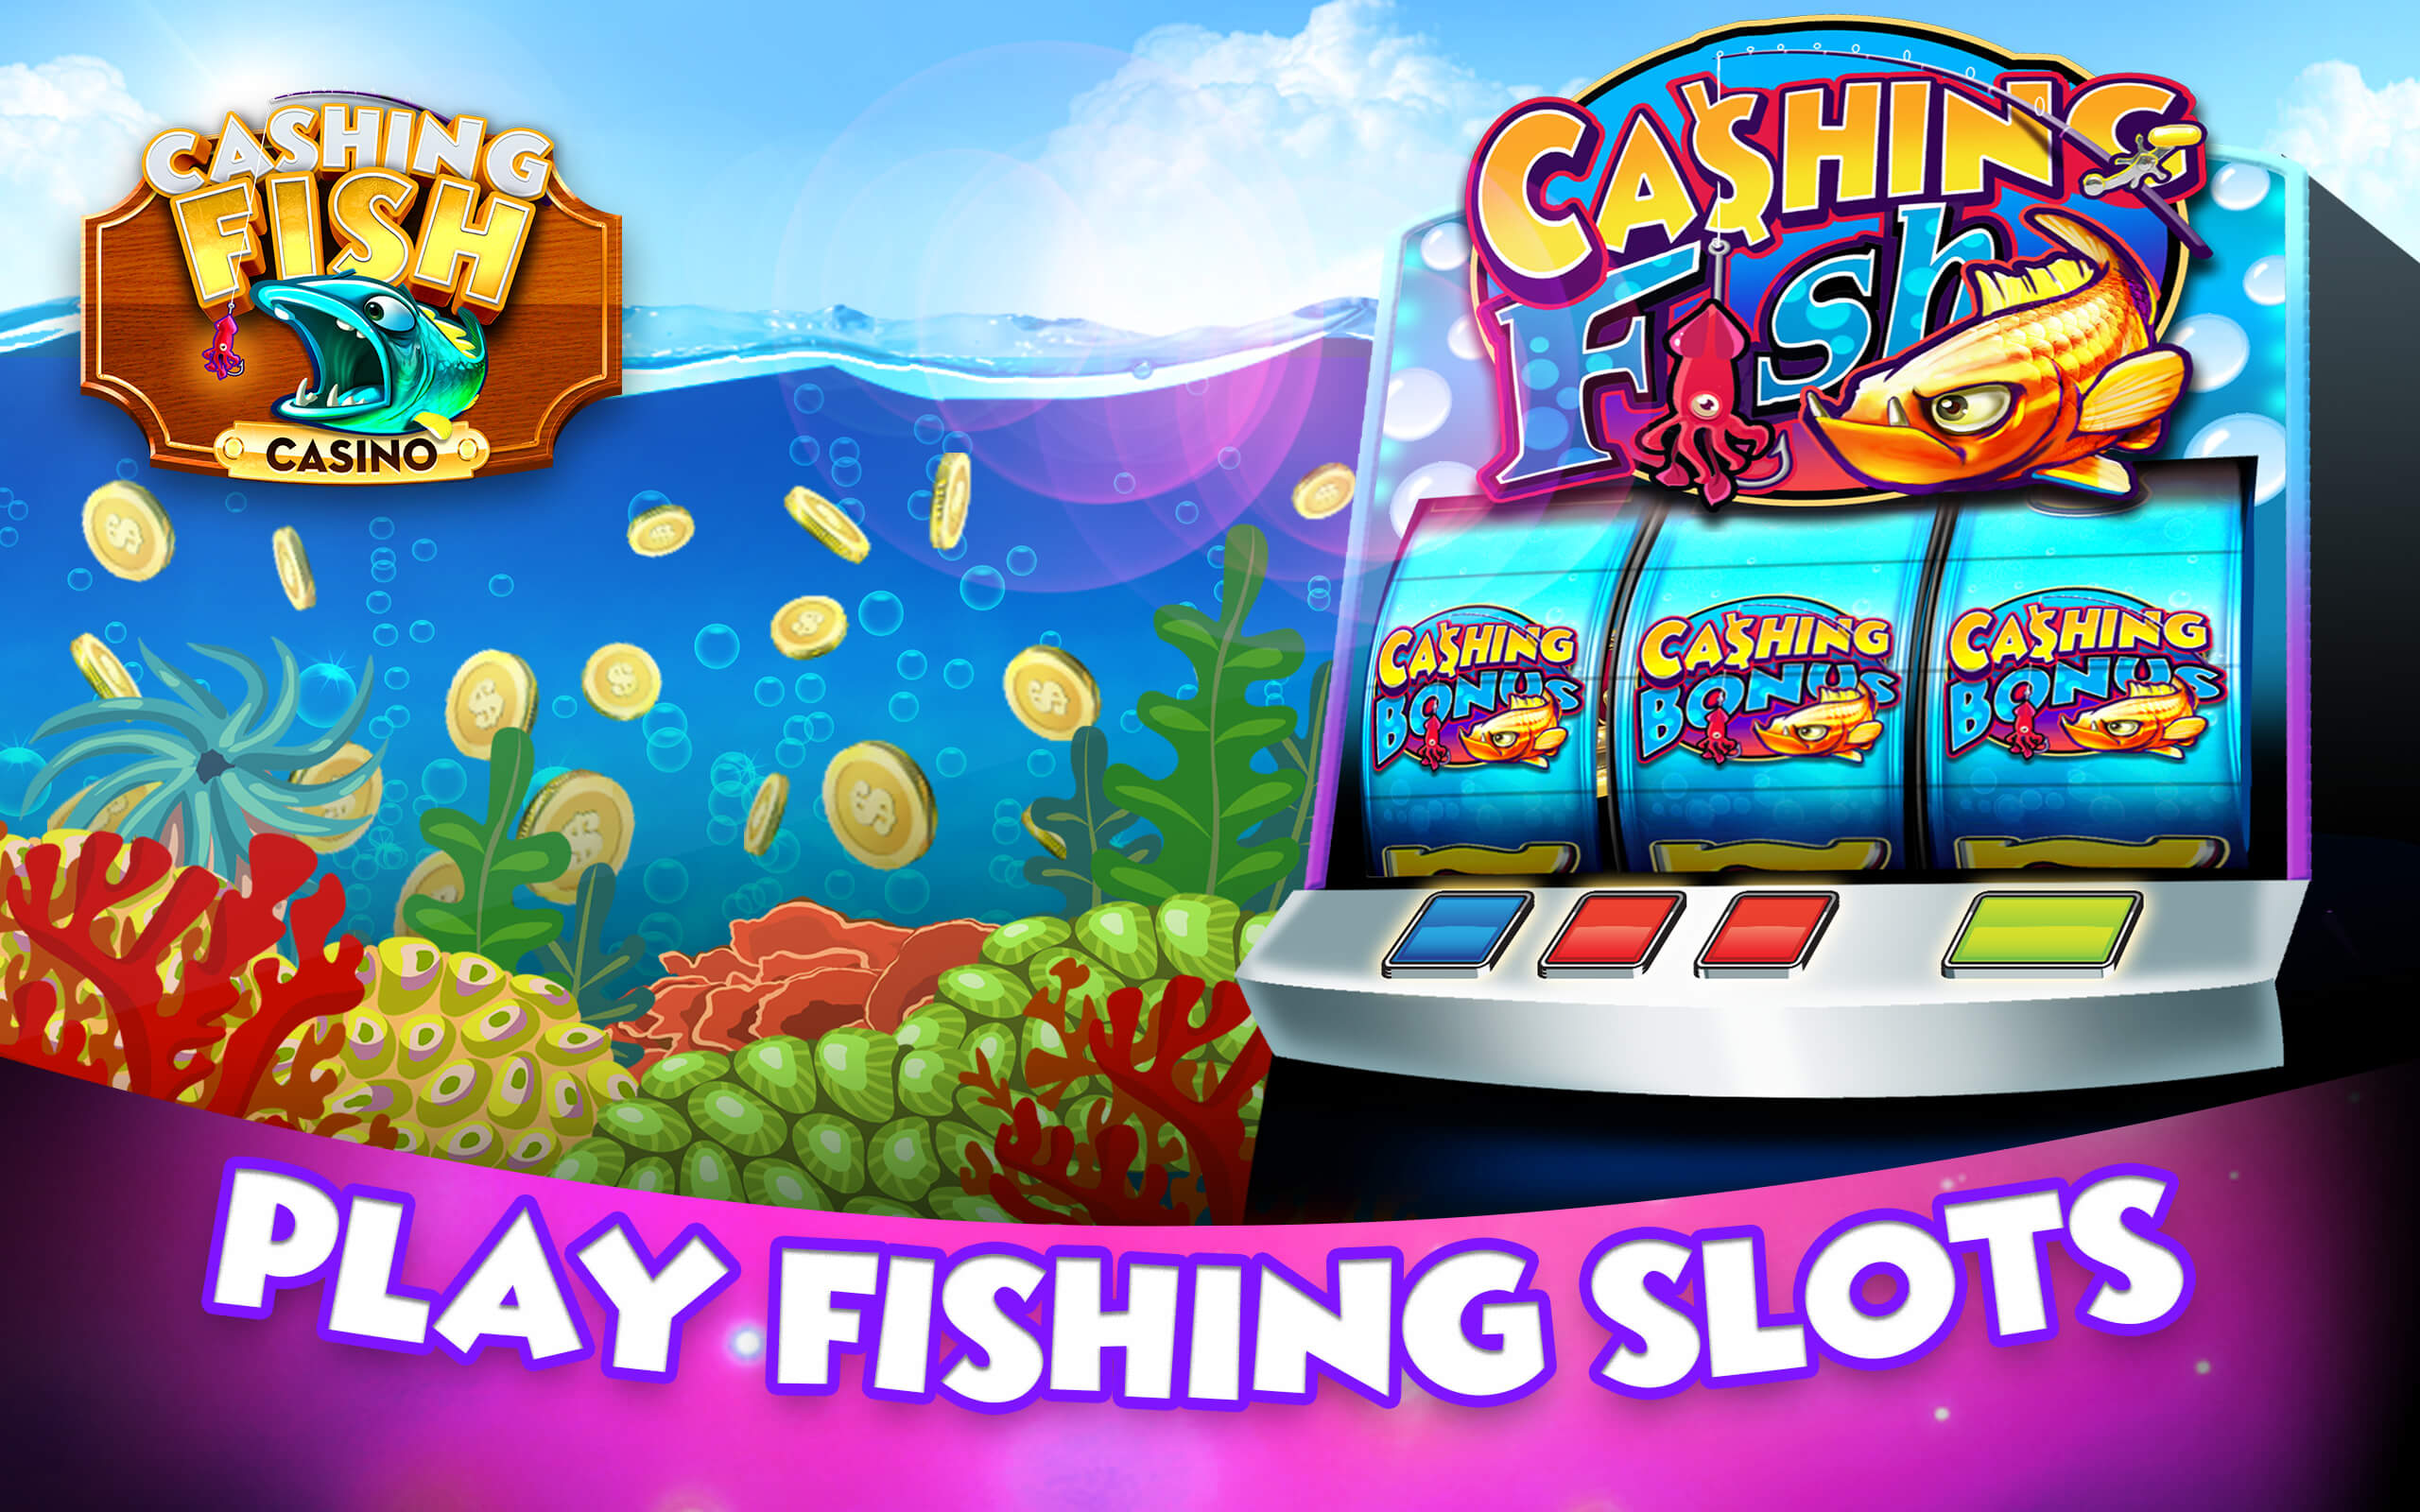 Cashing fish las vegas casino slots free big gold fish for Fish casino slot